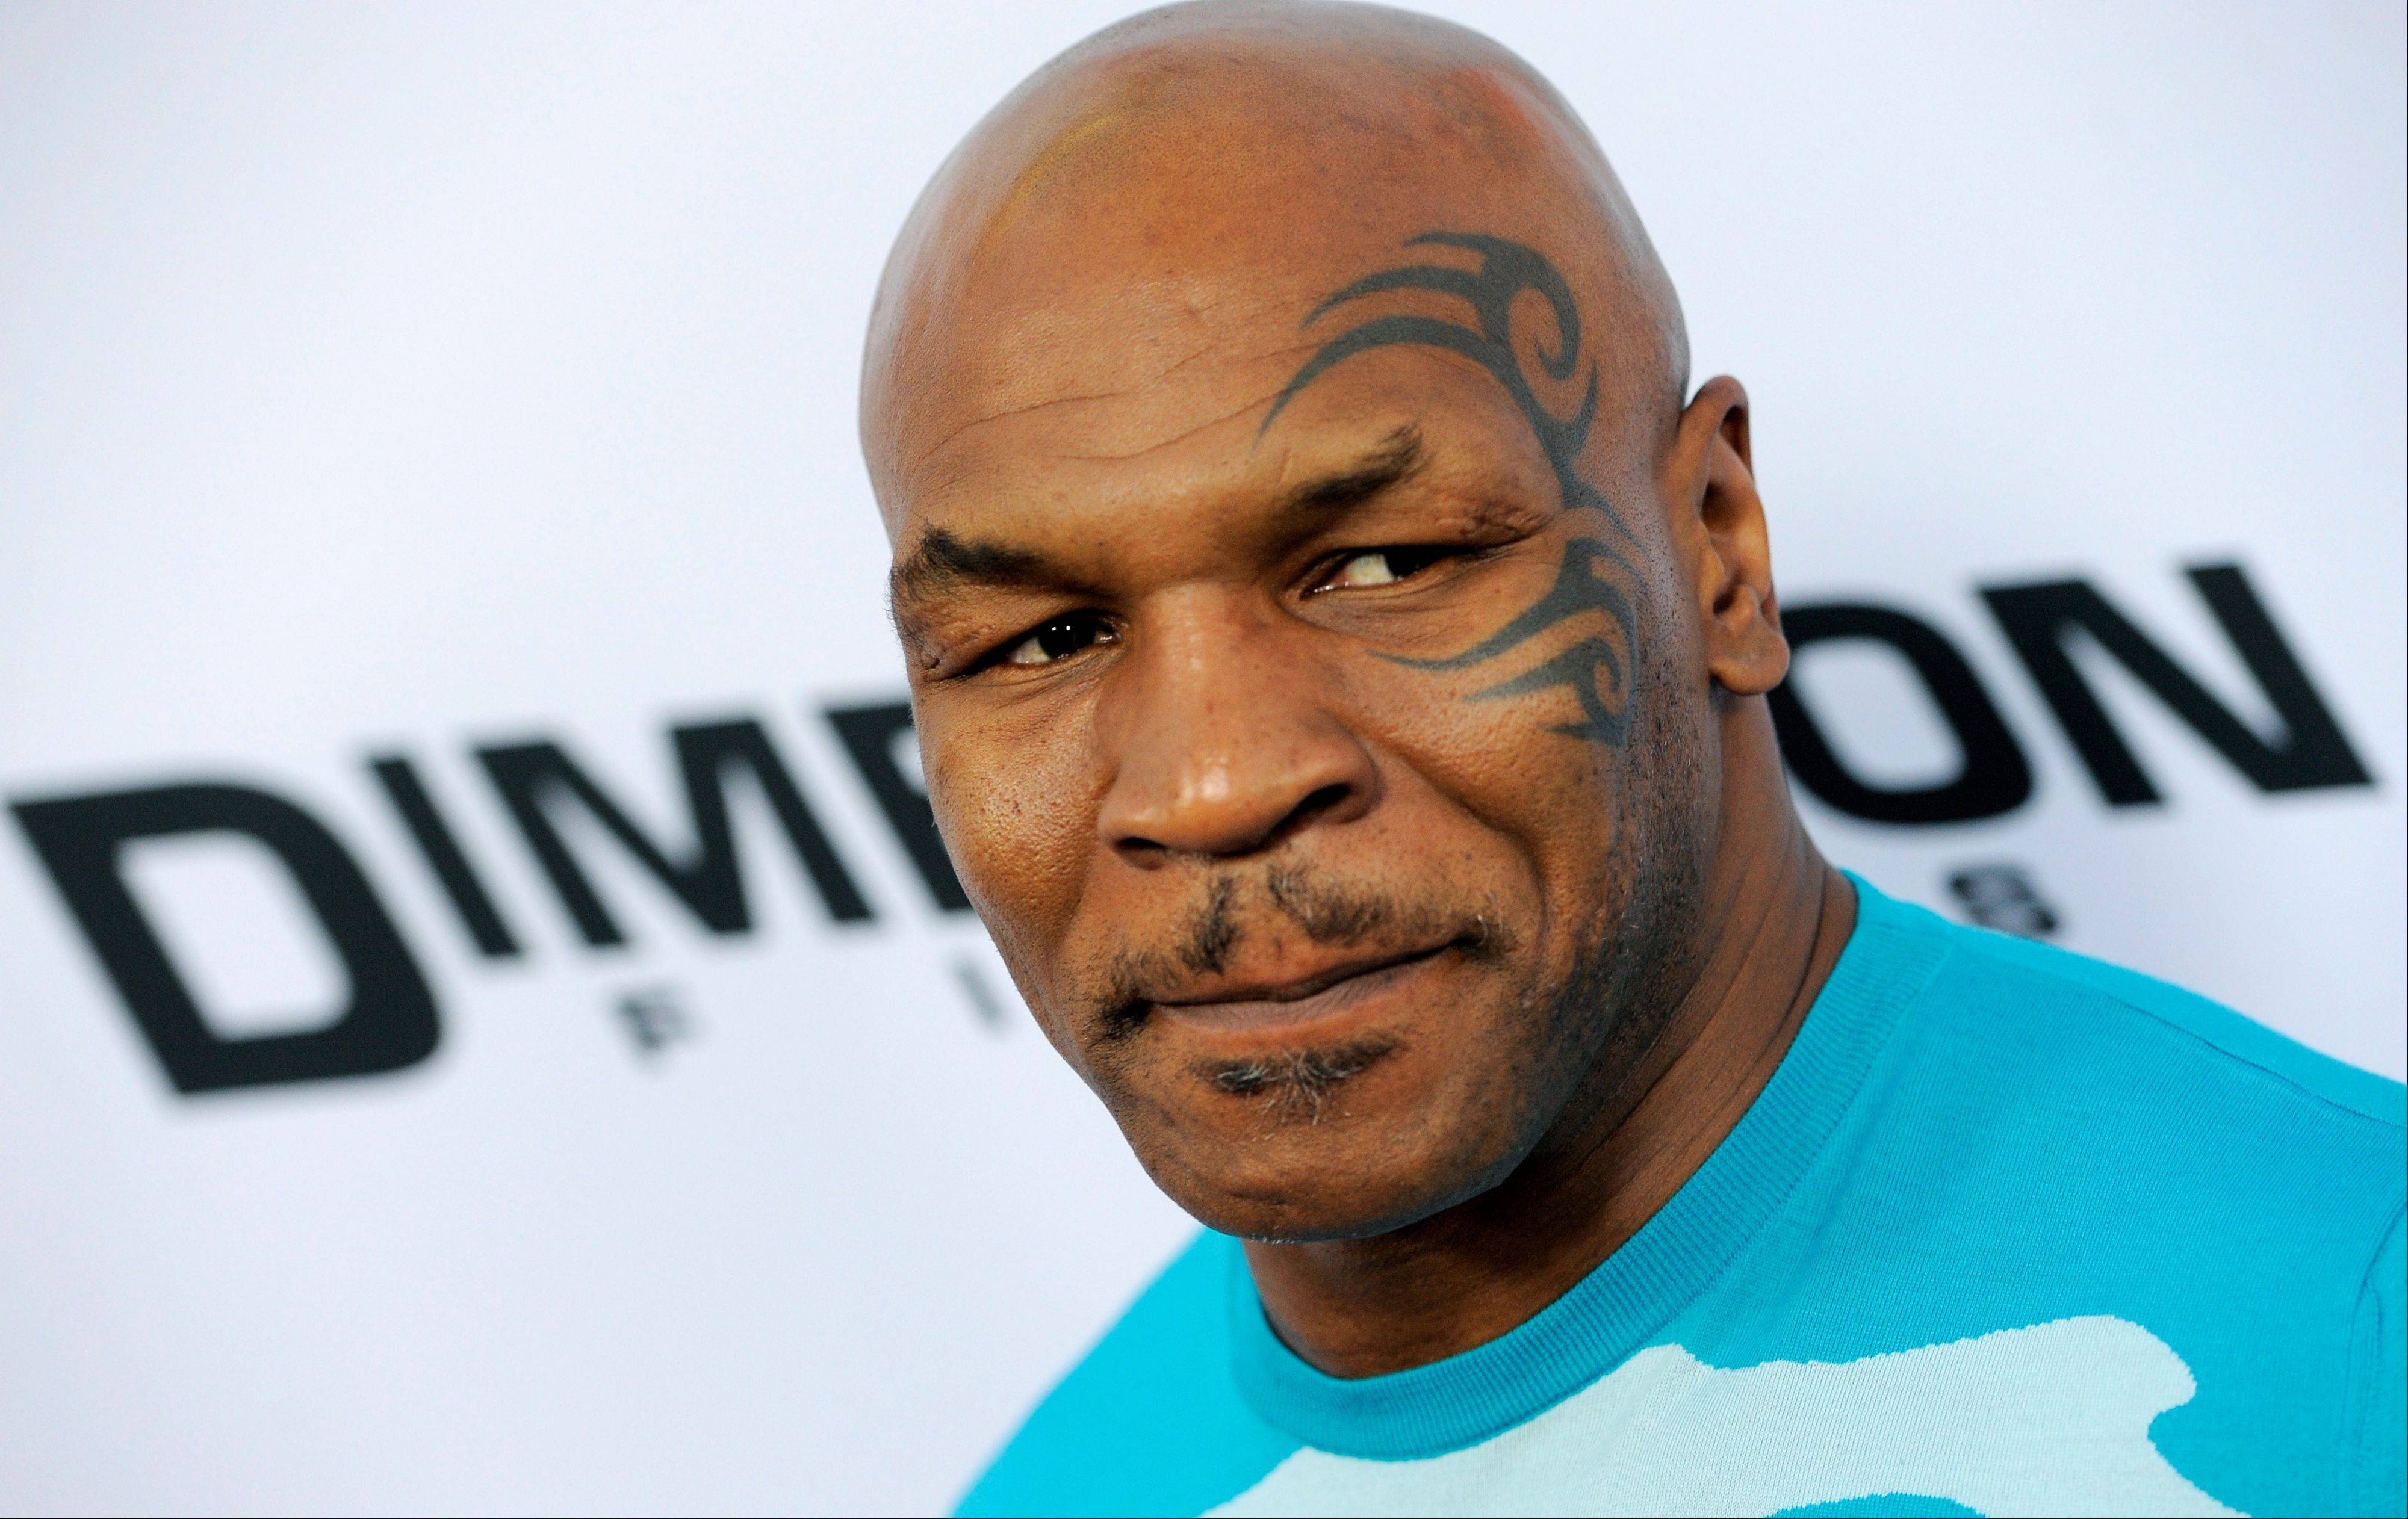 Mike Tyson will be a cartoon detective in a new animated series on the young adult network Adult Swim.